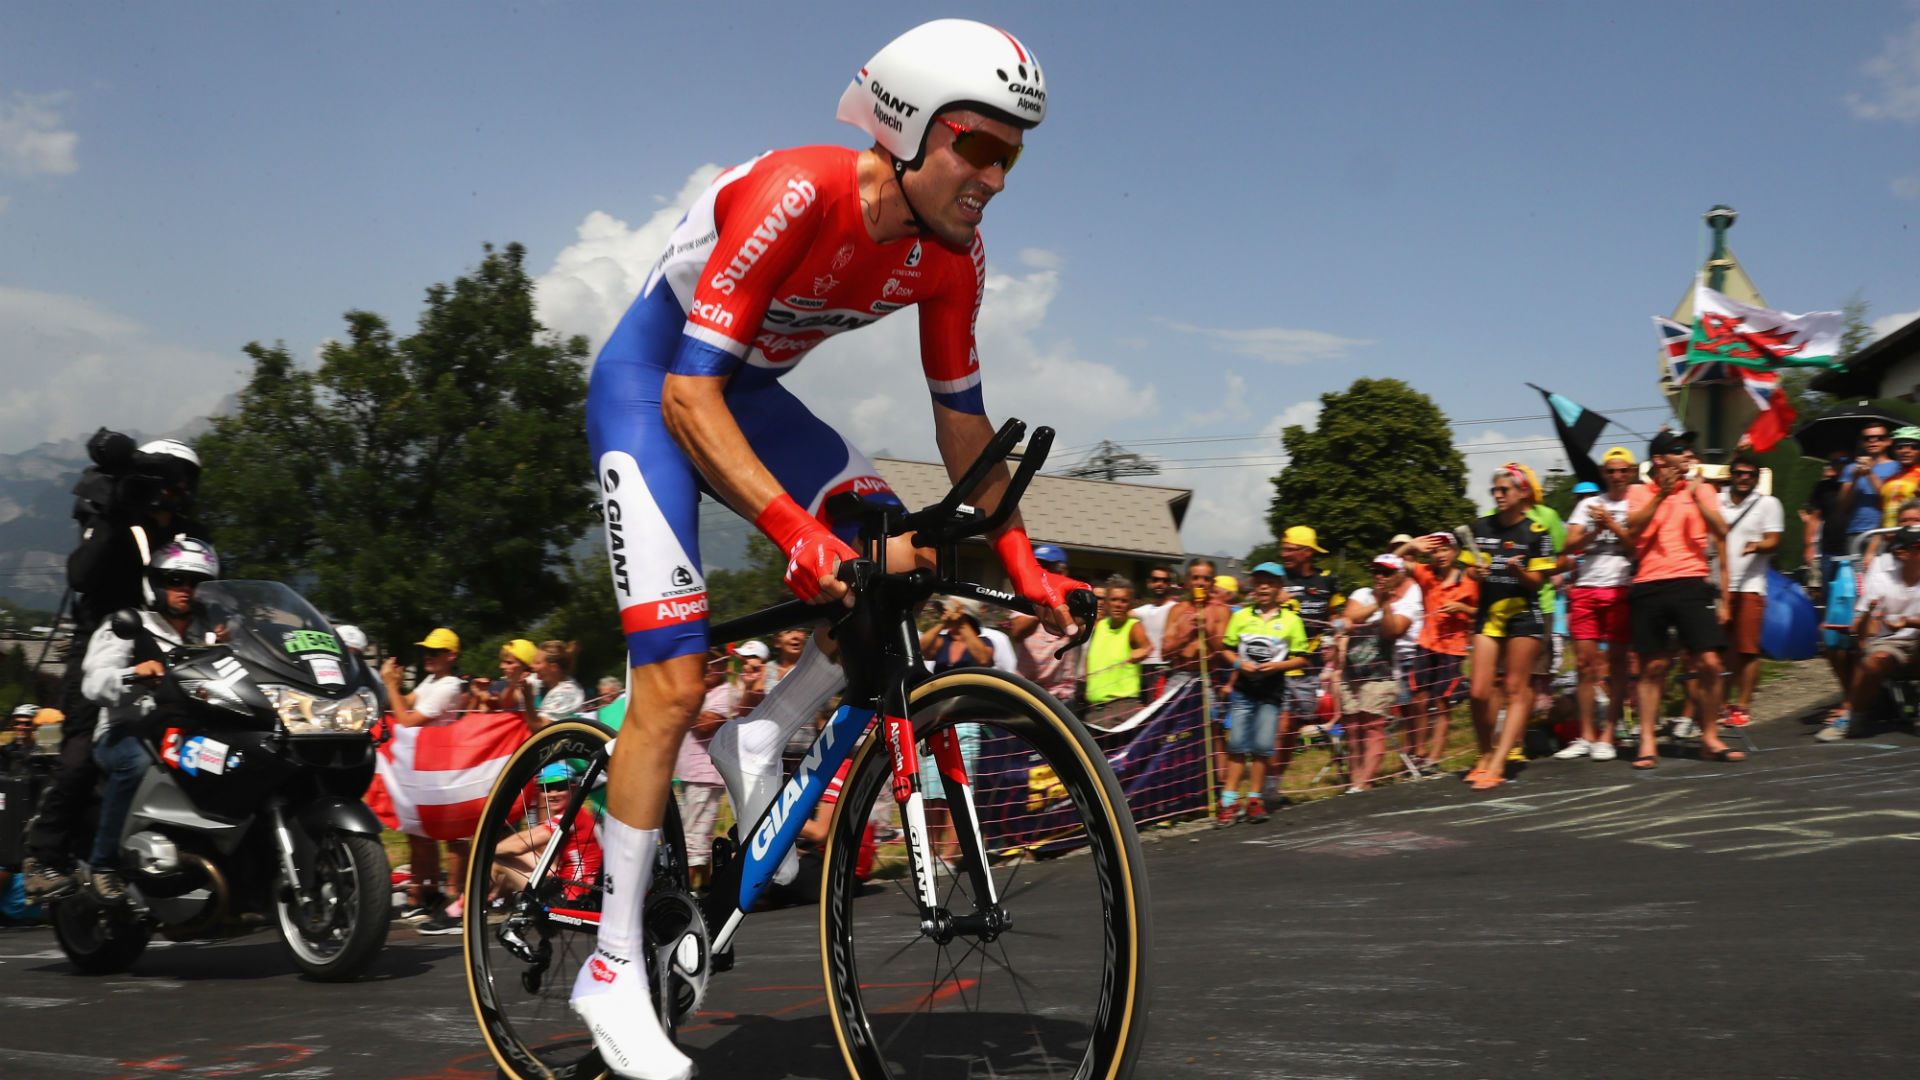 Team Sunweb have announced that Tom Dumoulin will miss the Tour de France, on the same day that Chris Froome left hospital.